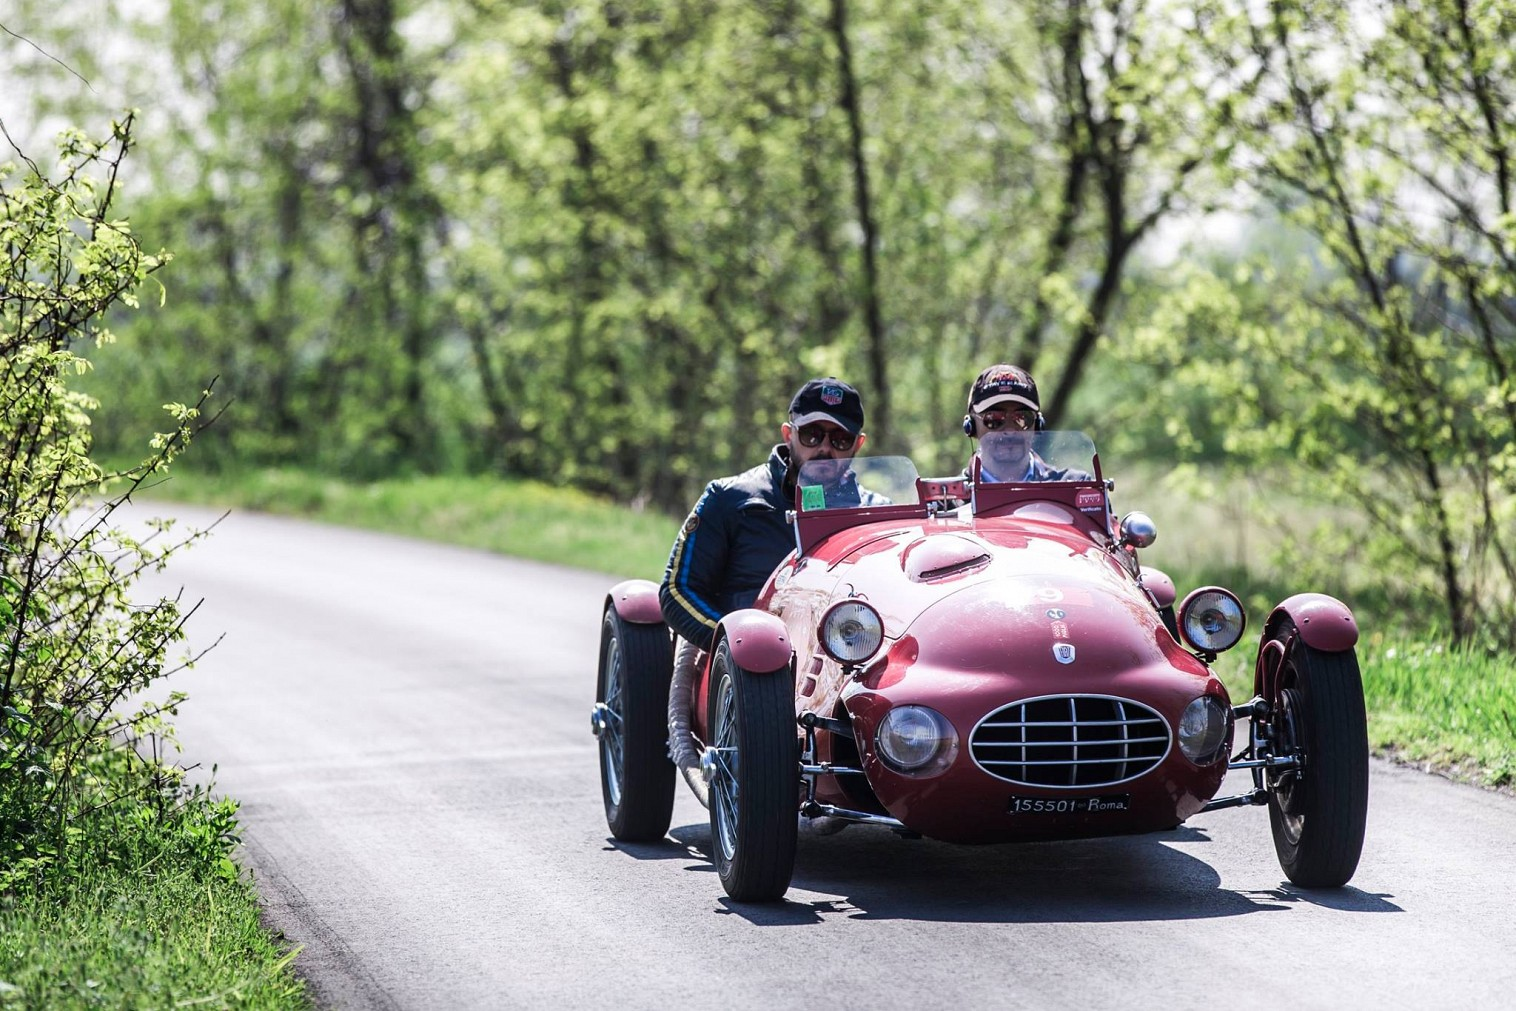 Bellini-Tiberti second time in a row winners of the 10th Franciacorta Historic